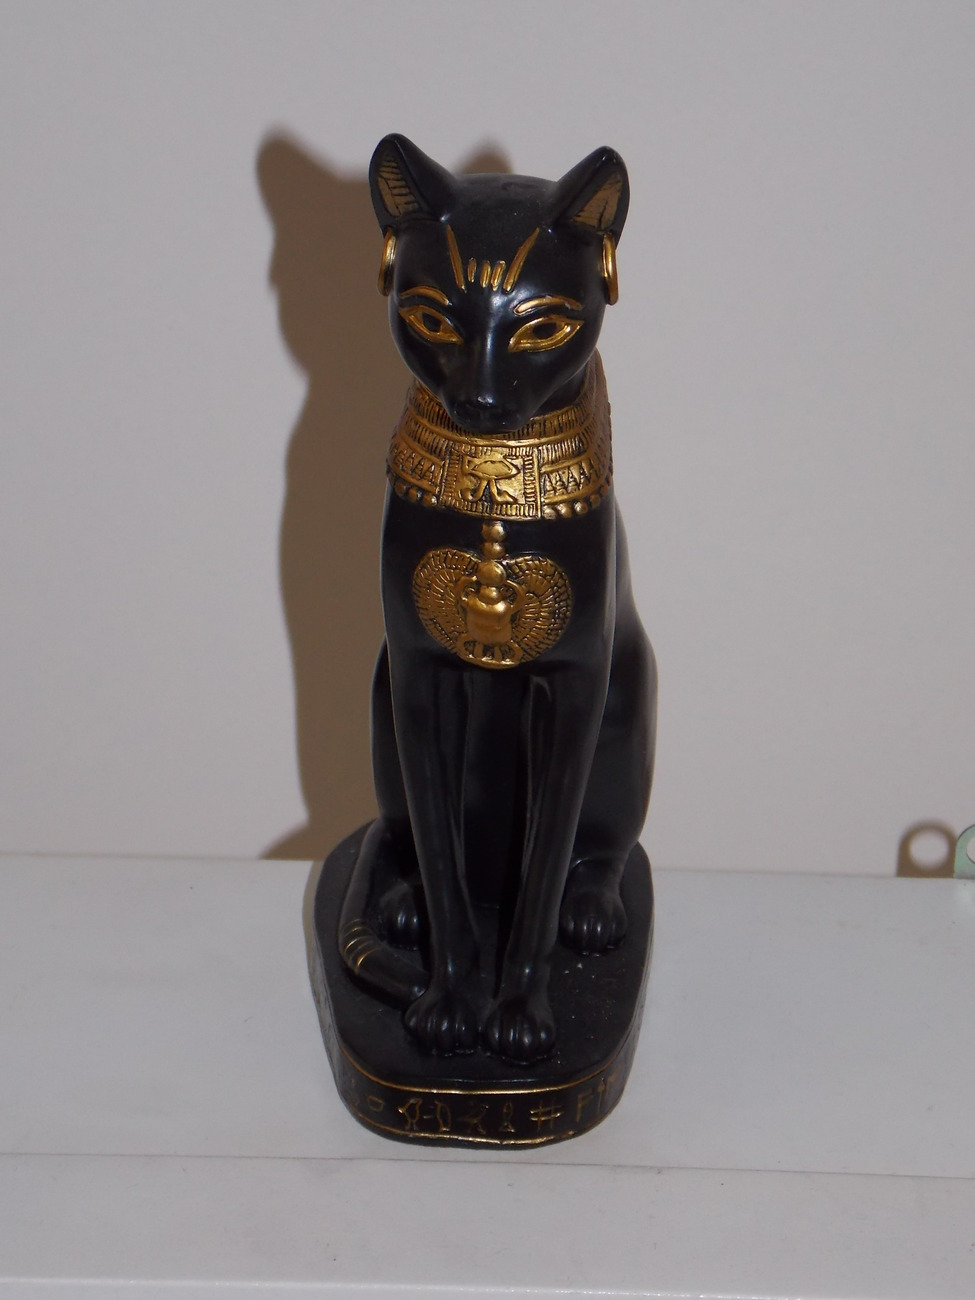 Egyptian Cat Goddess Resin Statue 8 Inches Tall